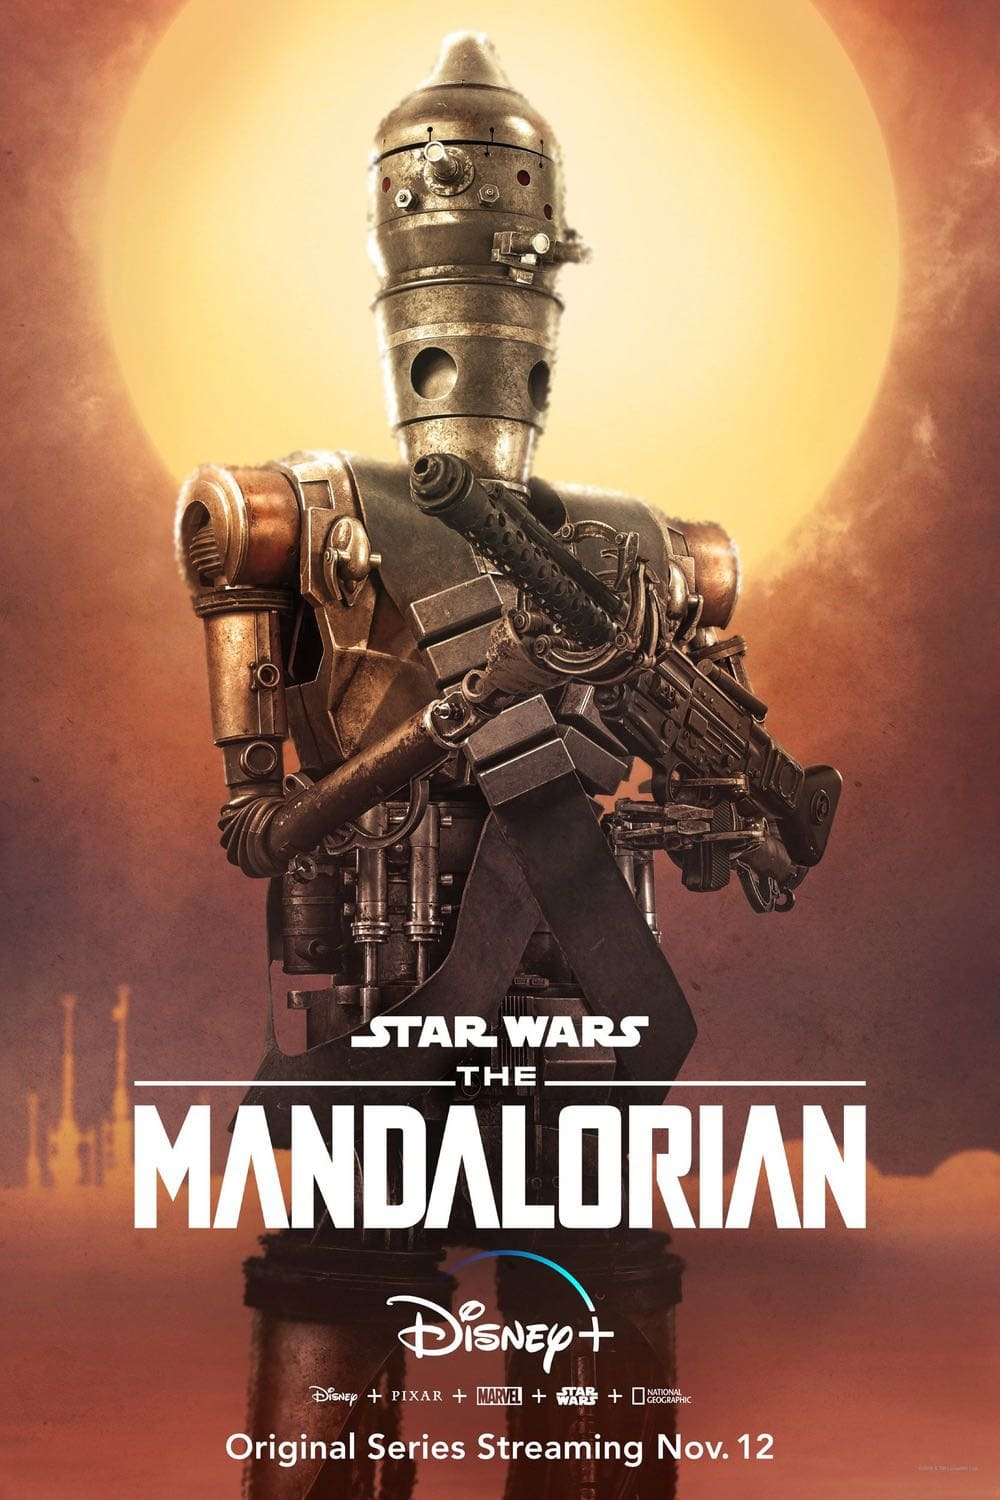 Star Wars The Mandalorian IG-11 Character Poster